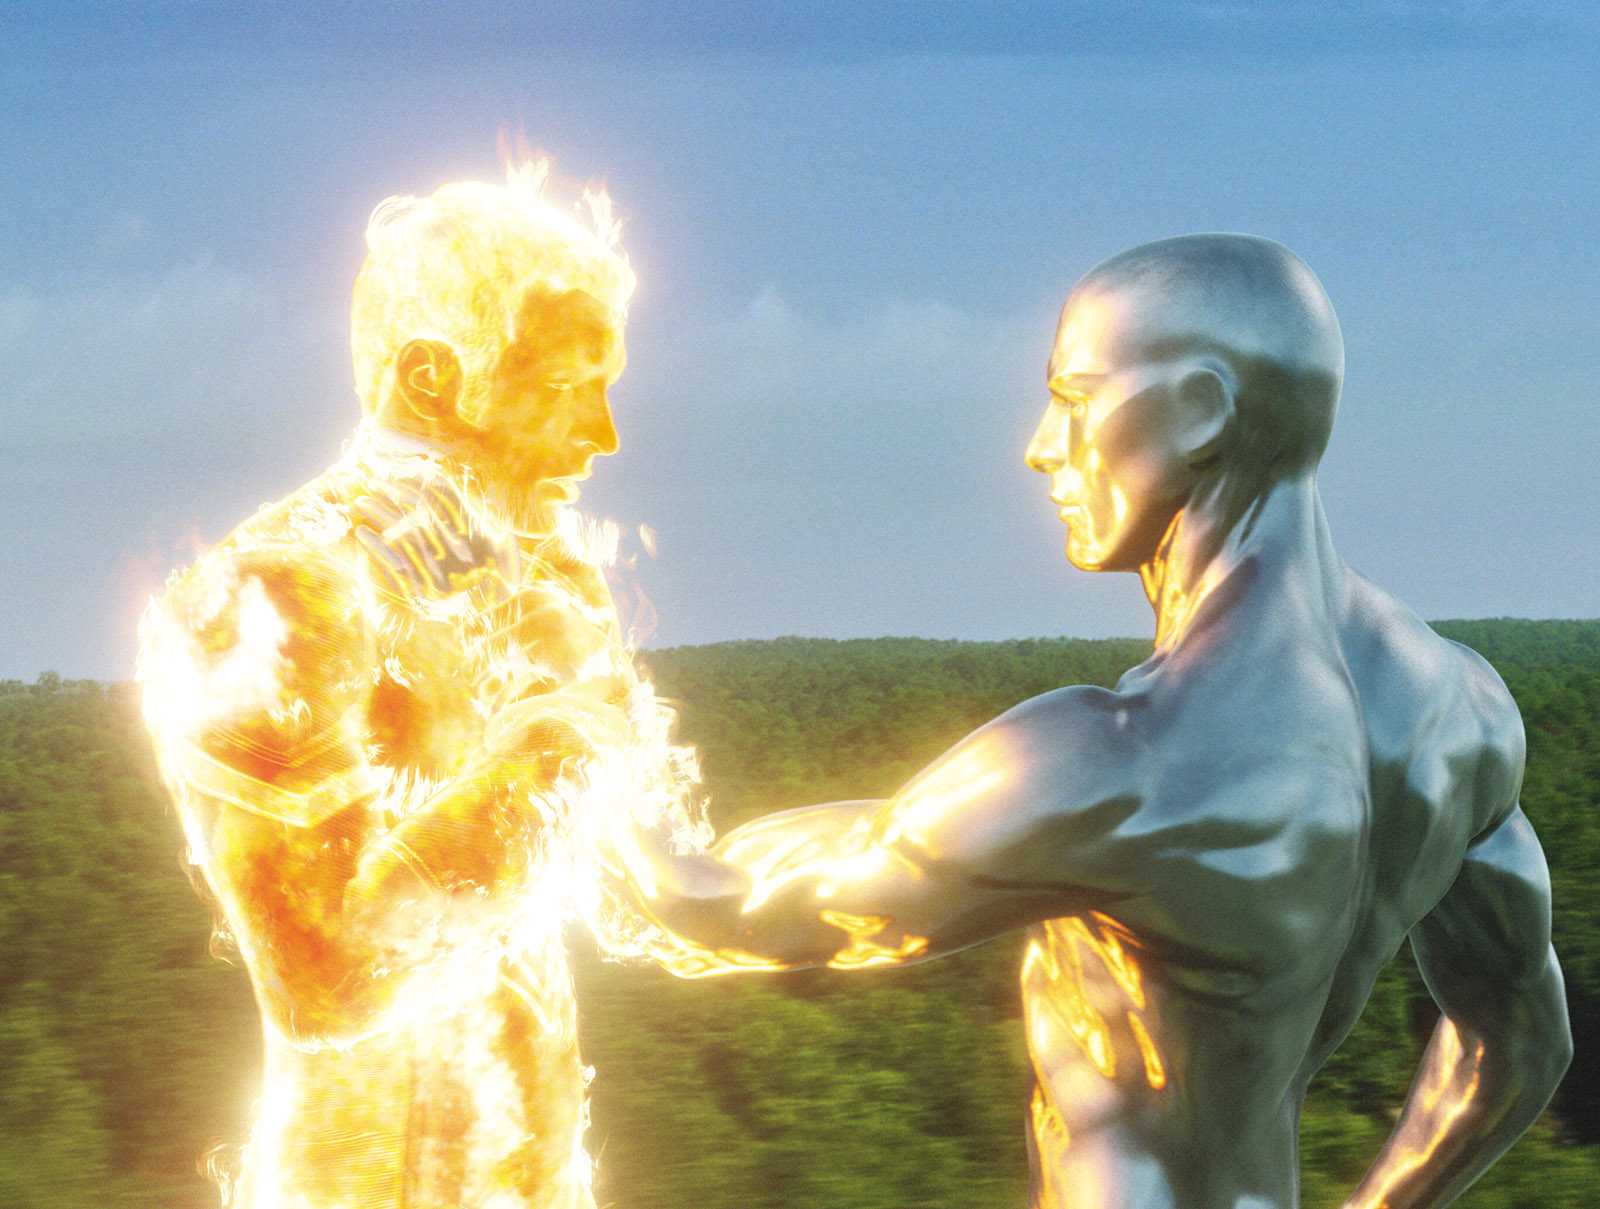 and Doug Jones as the Silver Surfer in Fantastic Four: Rise of the Silver Surfer